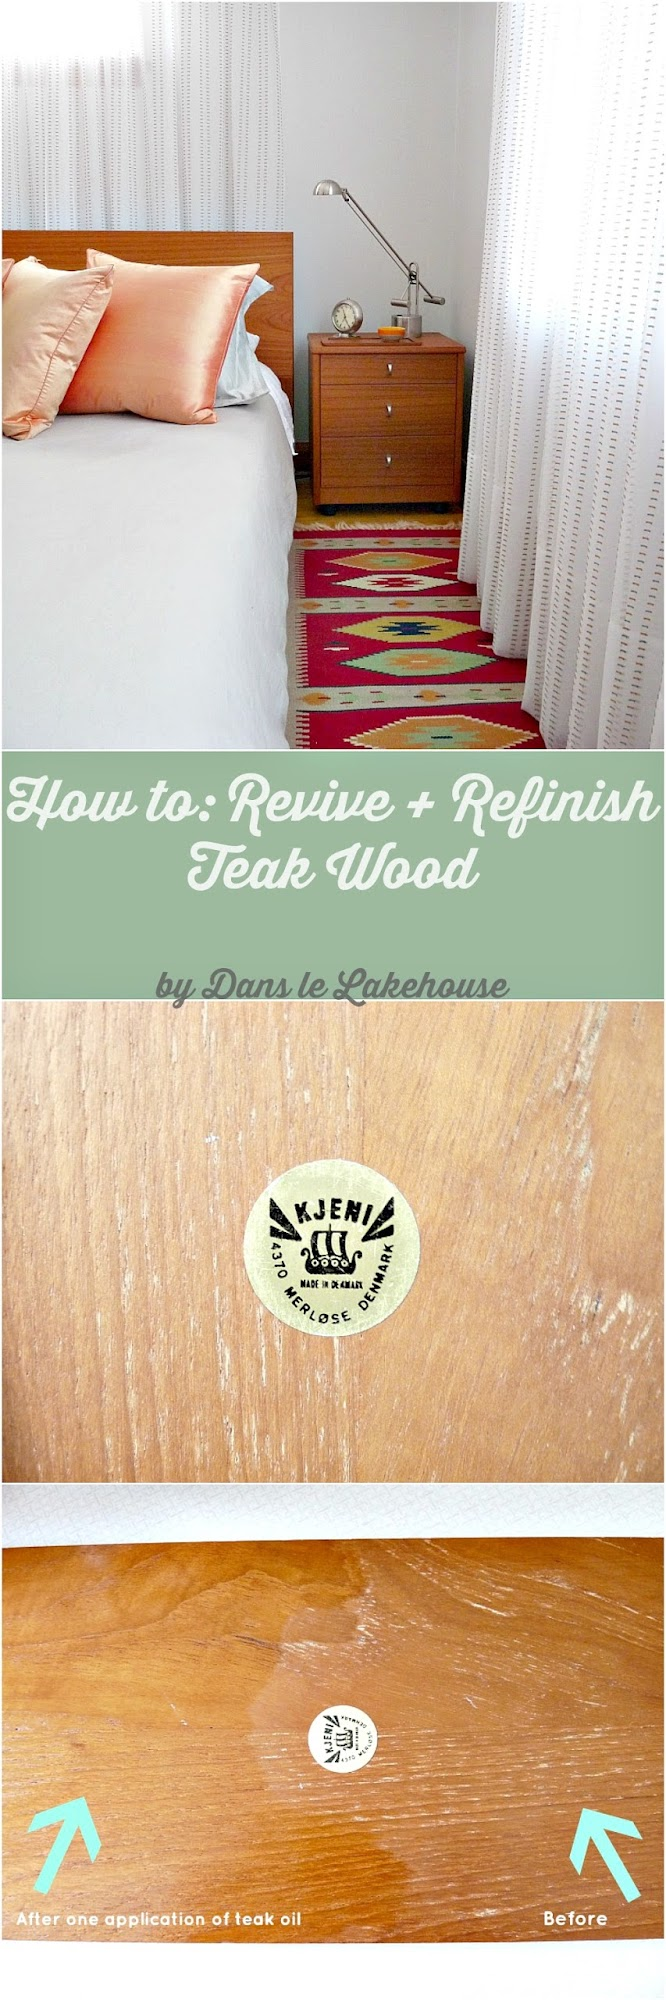 How to revive, refinish and restore teak wood with teak oil // Tips and Tricks